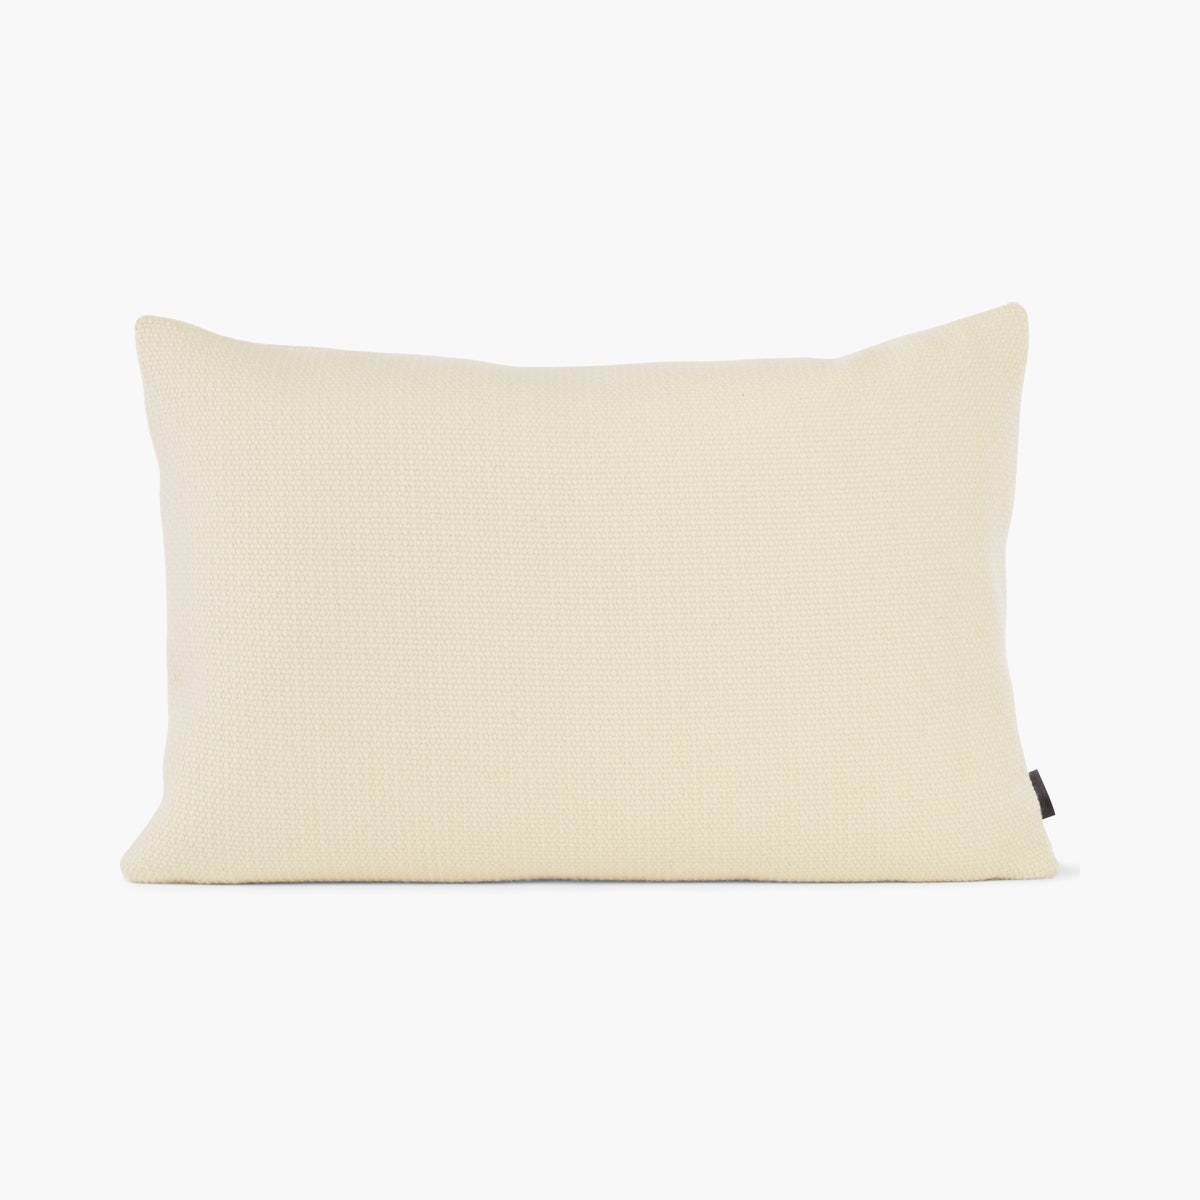 Lanalux Pillow, Natural